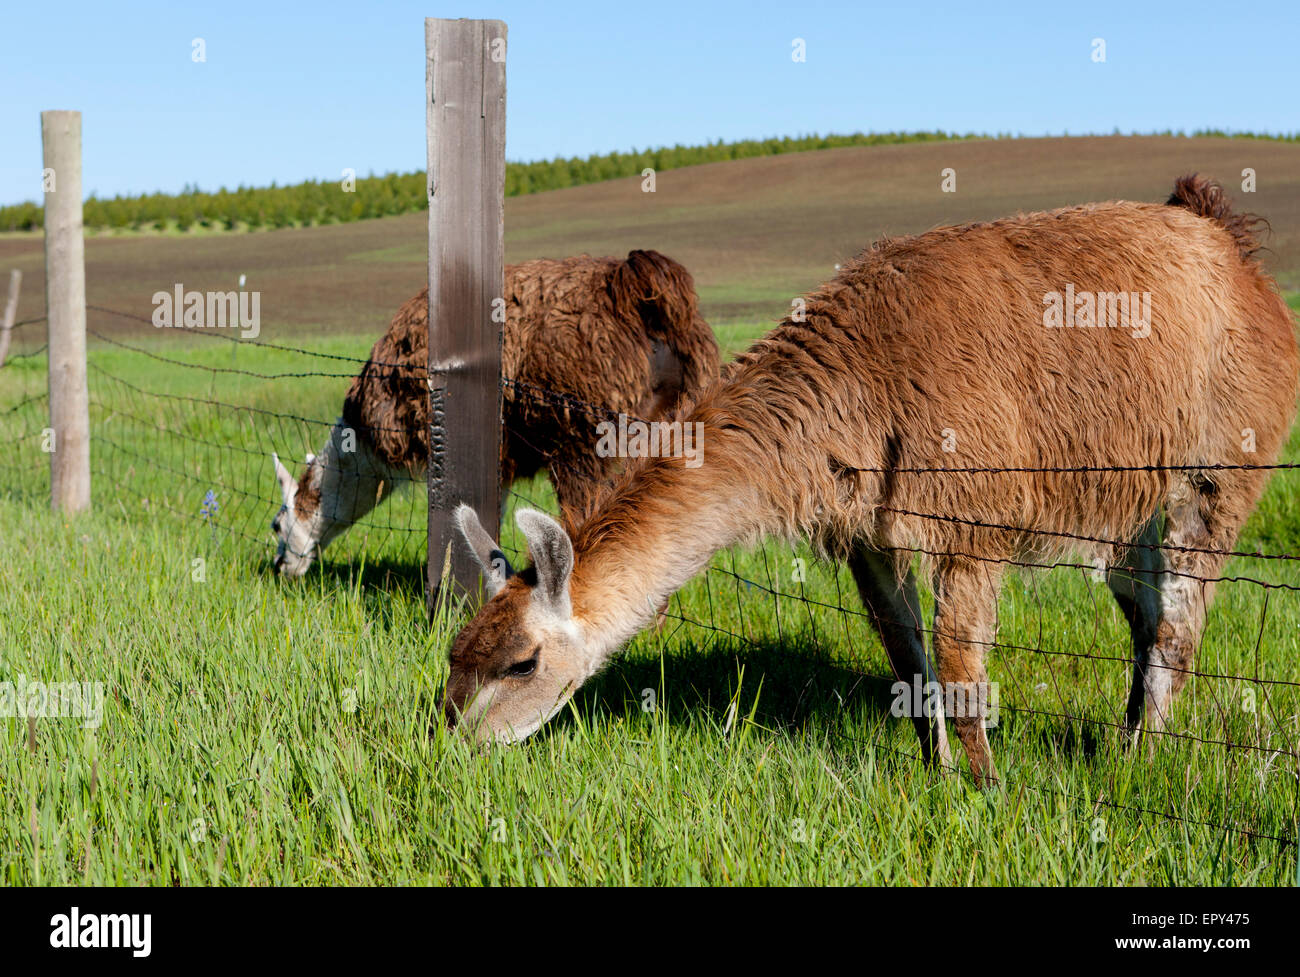 Grazing through the fence. - Stock Image